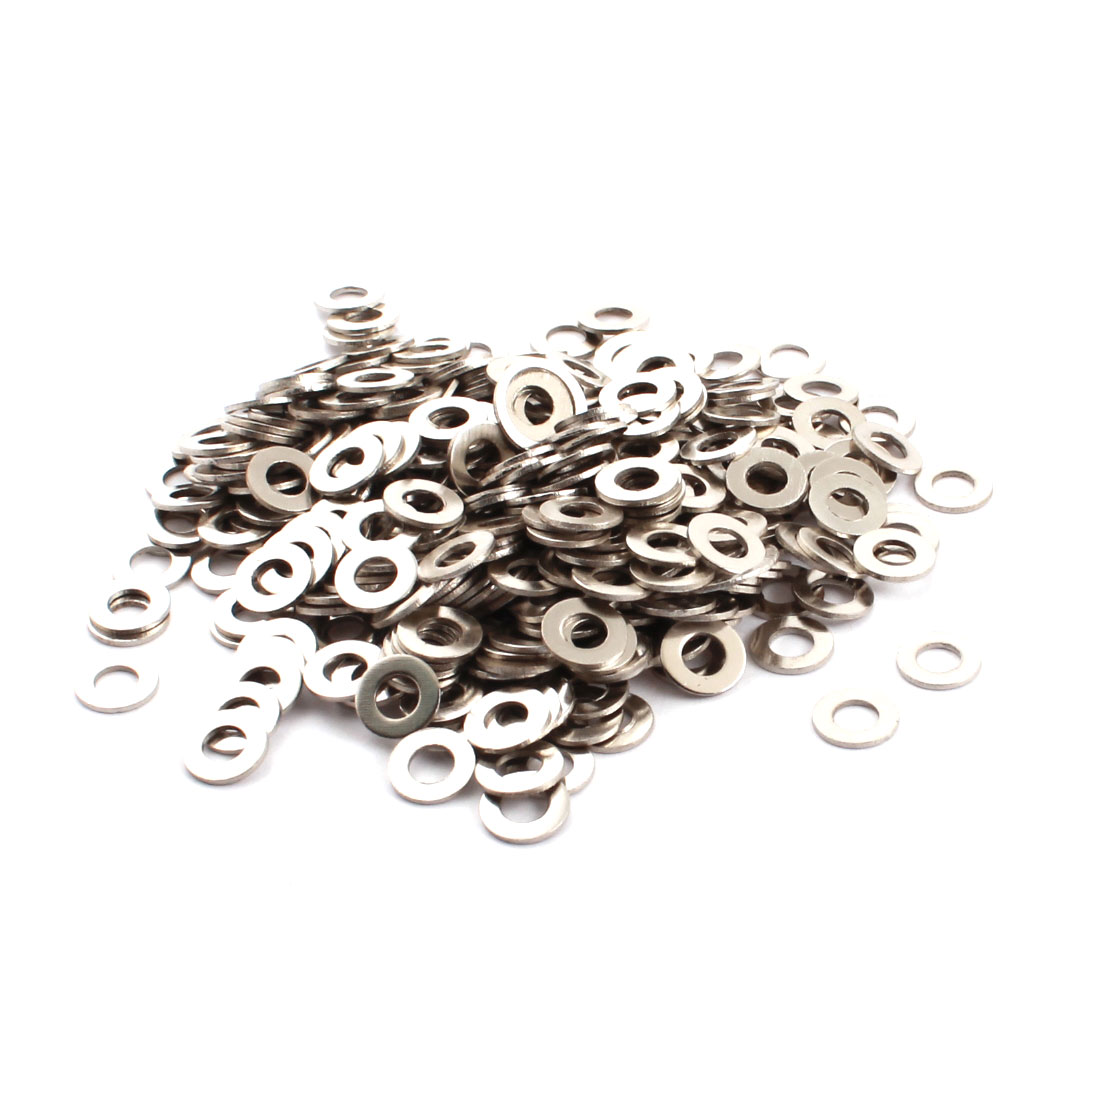 500Pcs Spare Parts 4mm x 8mm x 0.7mm Round Shaped Metal Washers Spacers Fasteners Rings